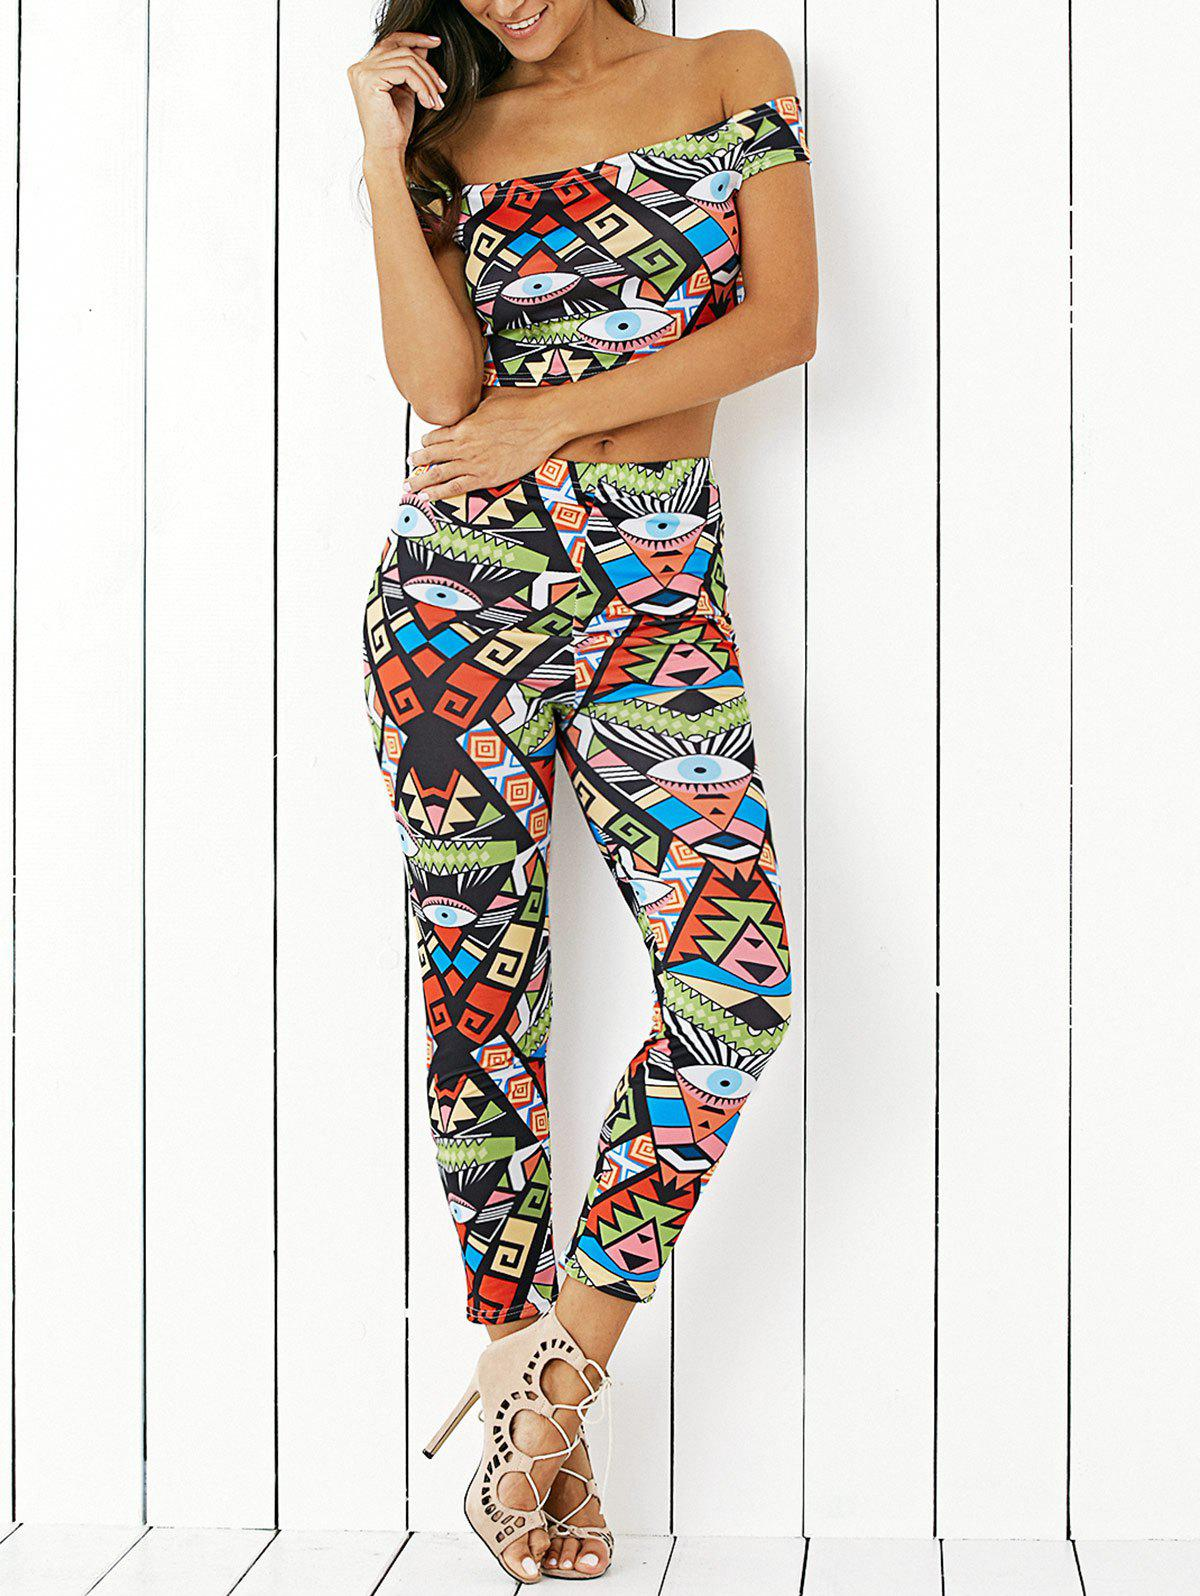 Stylish Off The Shoulder Print Crop Top and Skinny Ninth Pants Twinset fitting crop top and skinny running pants and zip up jacket